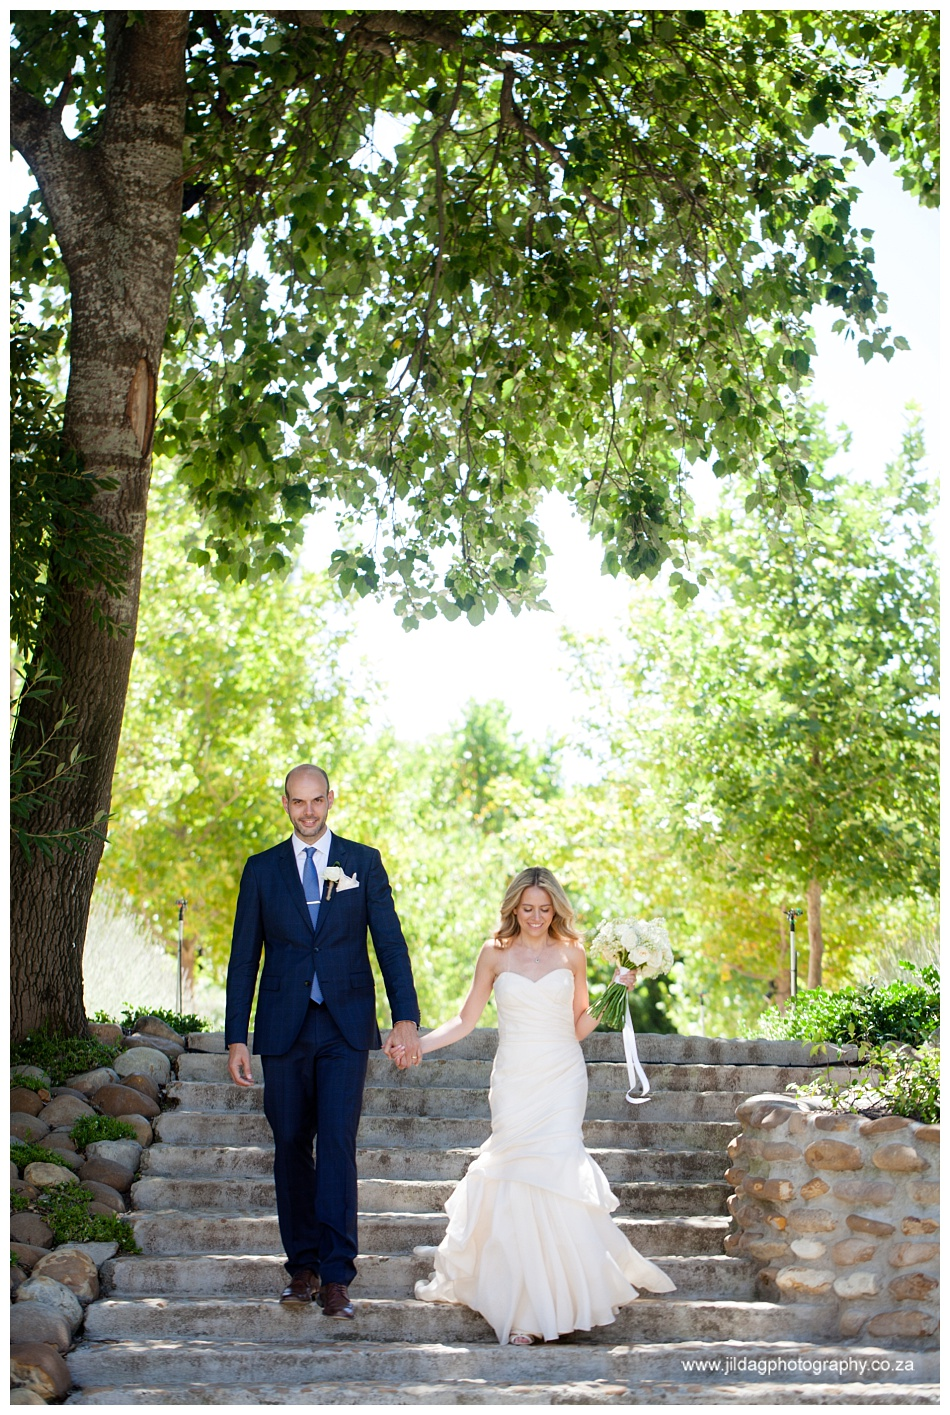 Jilda-G-Photography-Boschendal-wedding_1174